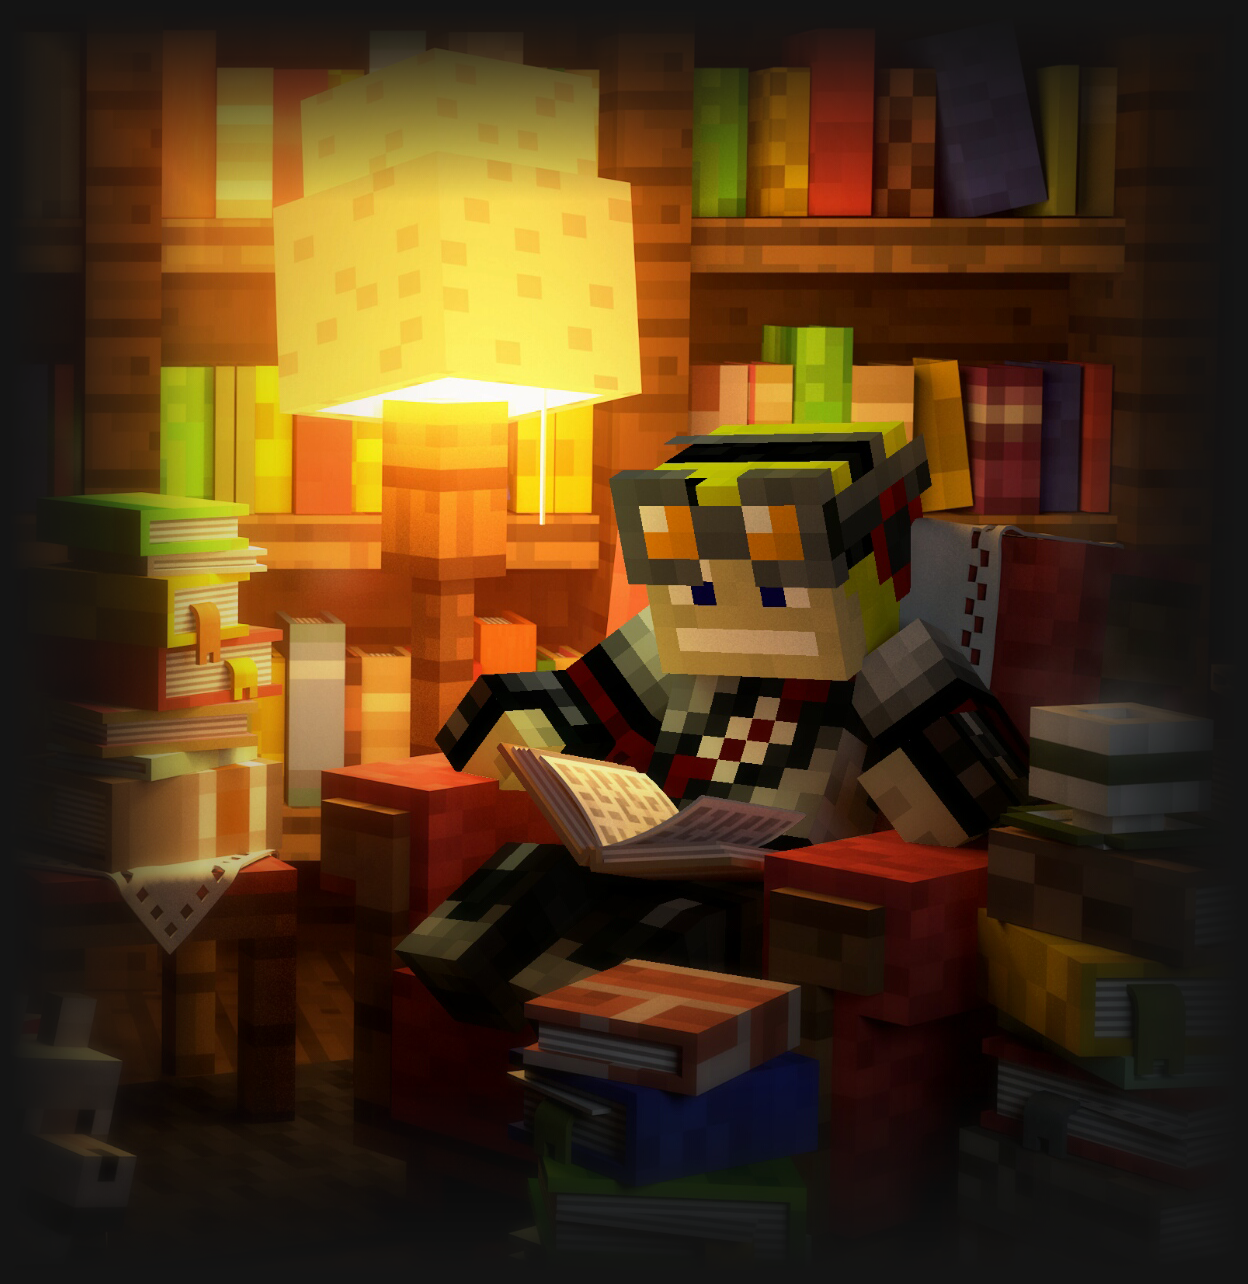 My Minecraft avatar reading